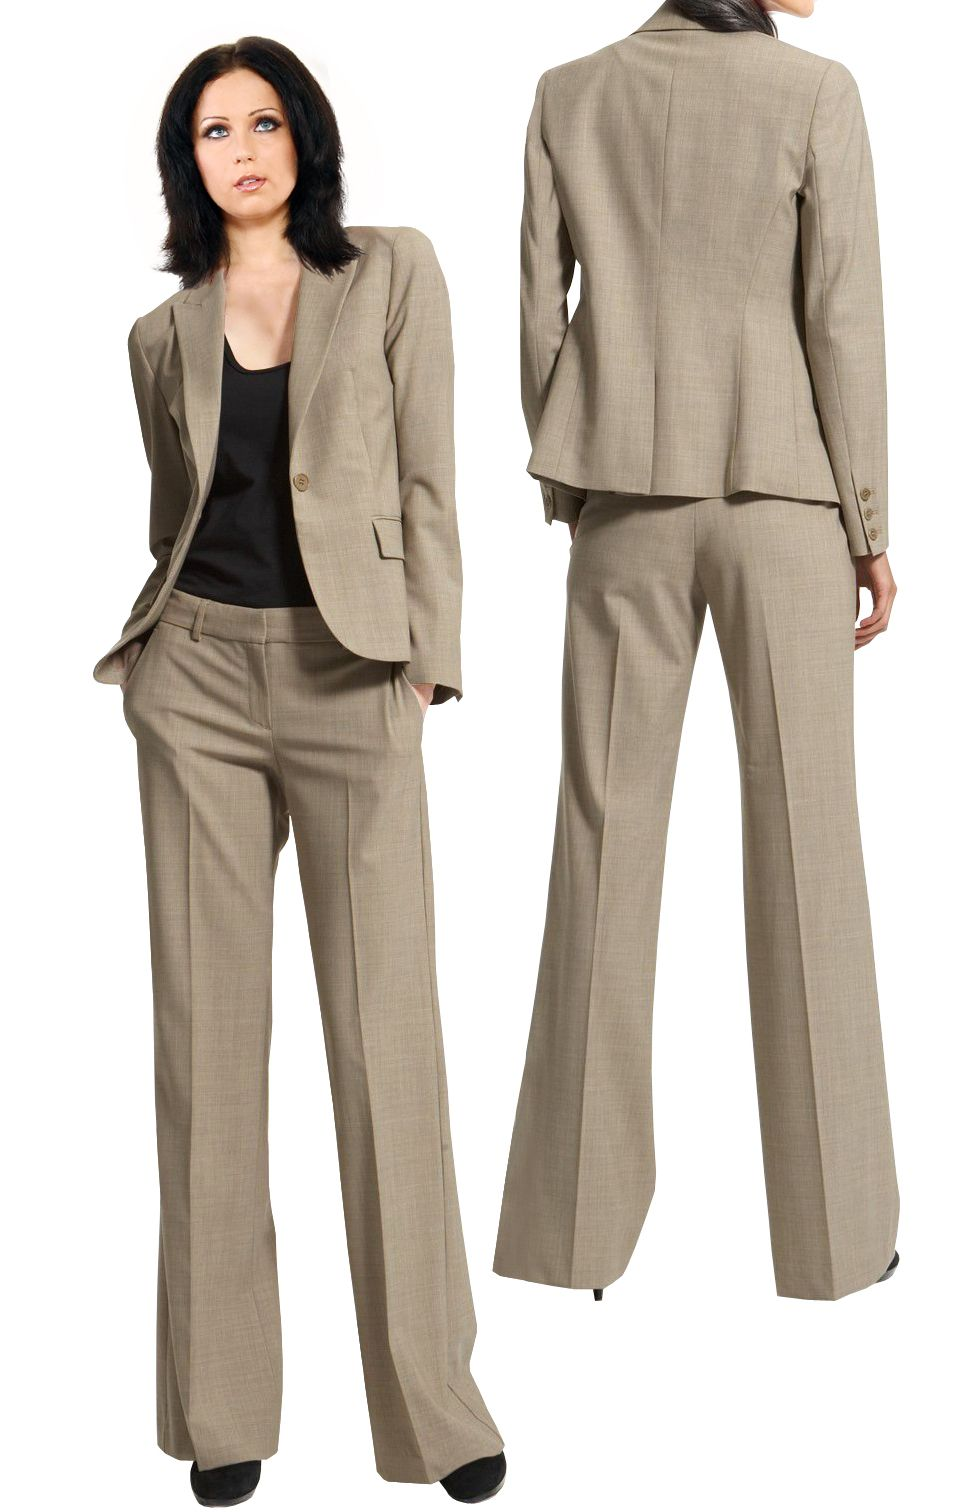 Awesome  Womensbusinesssuitsetsformalfashionlongsleevesuitpantsjpg